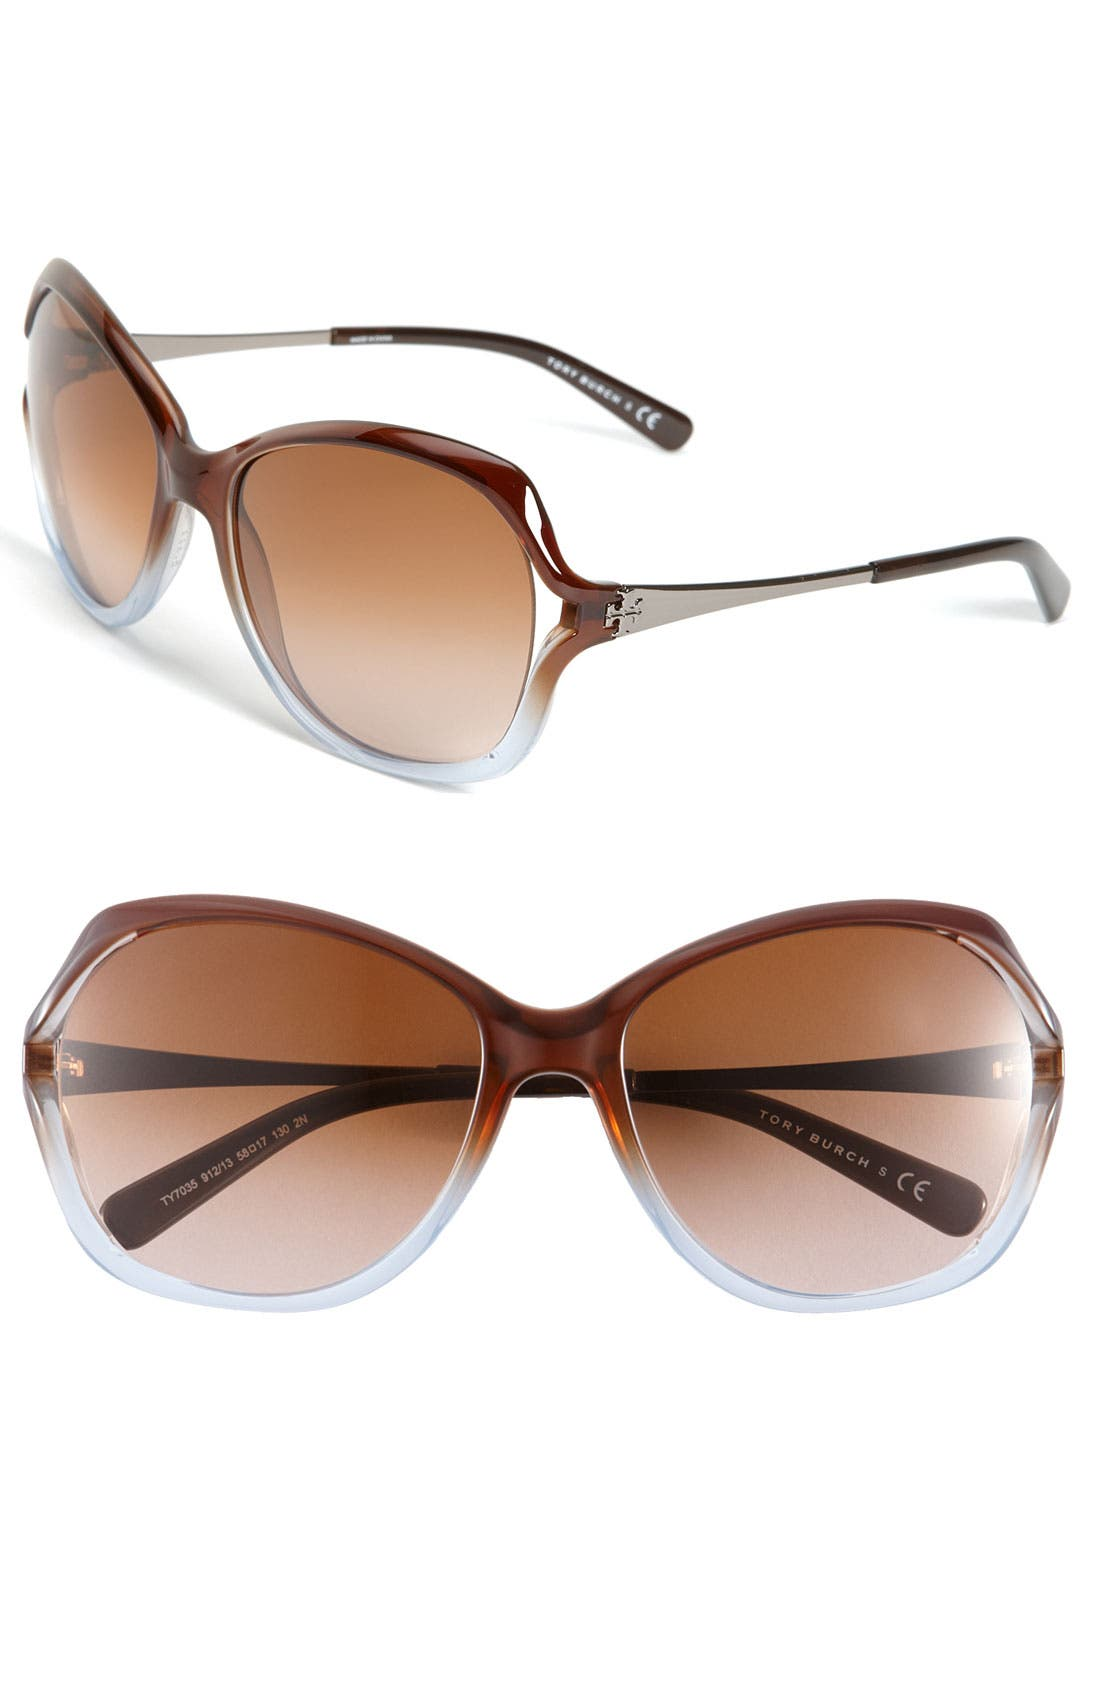 Main Image - Tory Burch 59mm Open Lens Butterfly Sunglasses (Online Only)